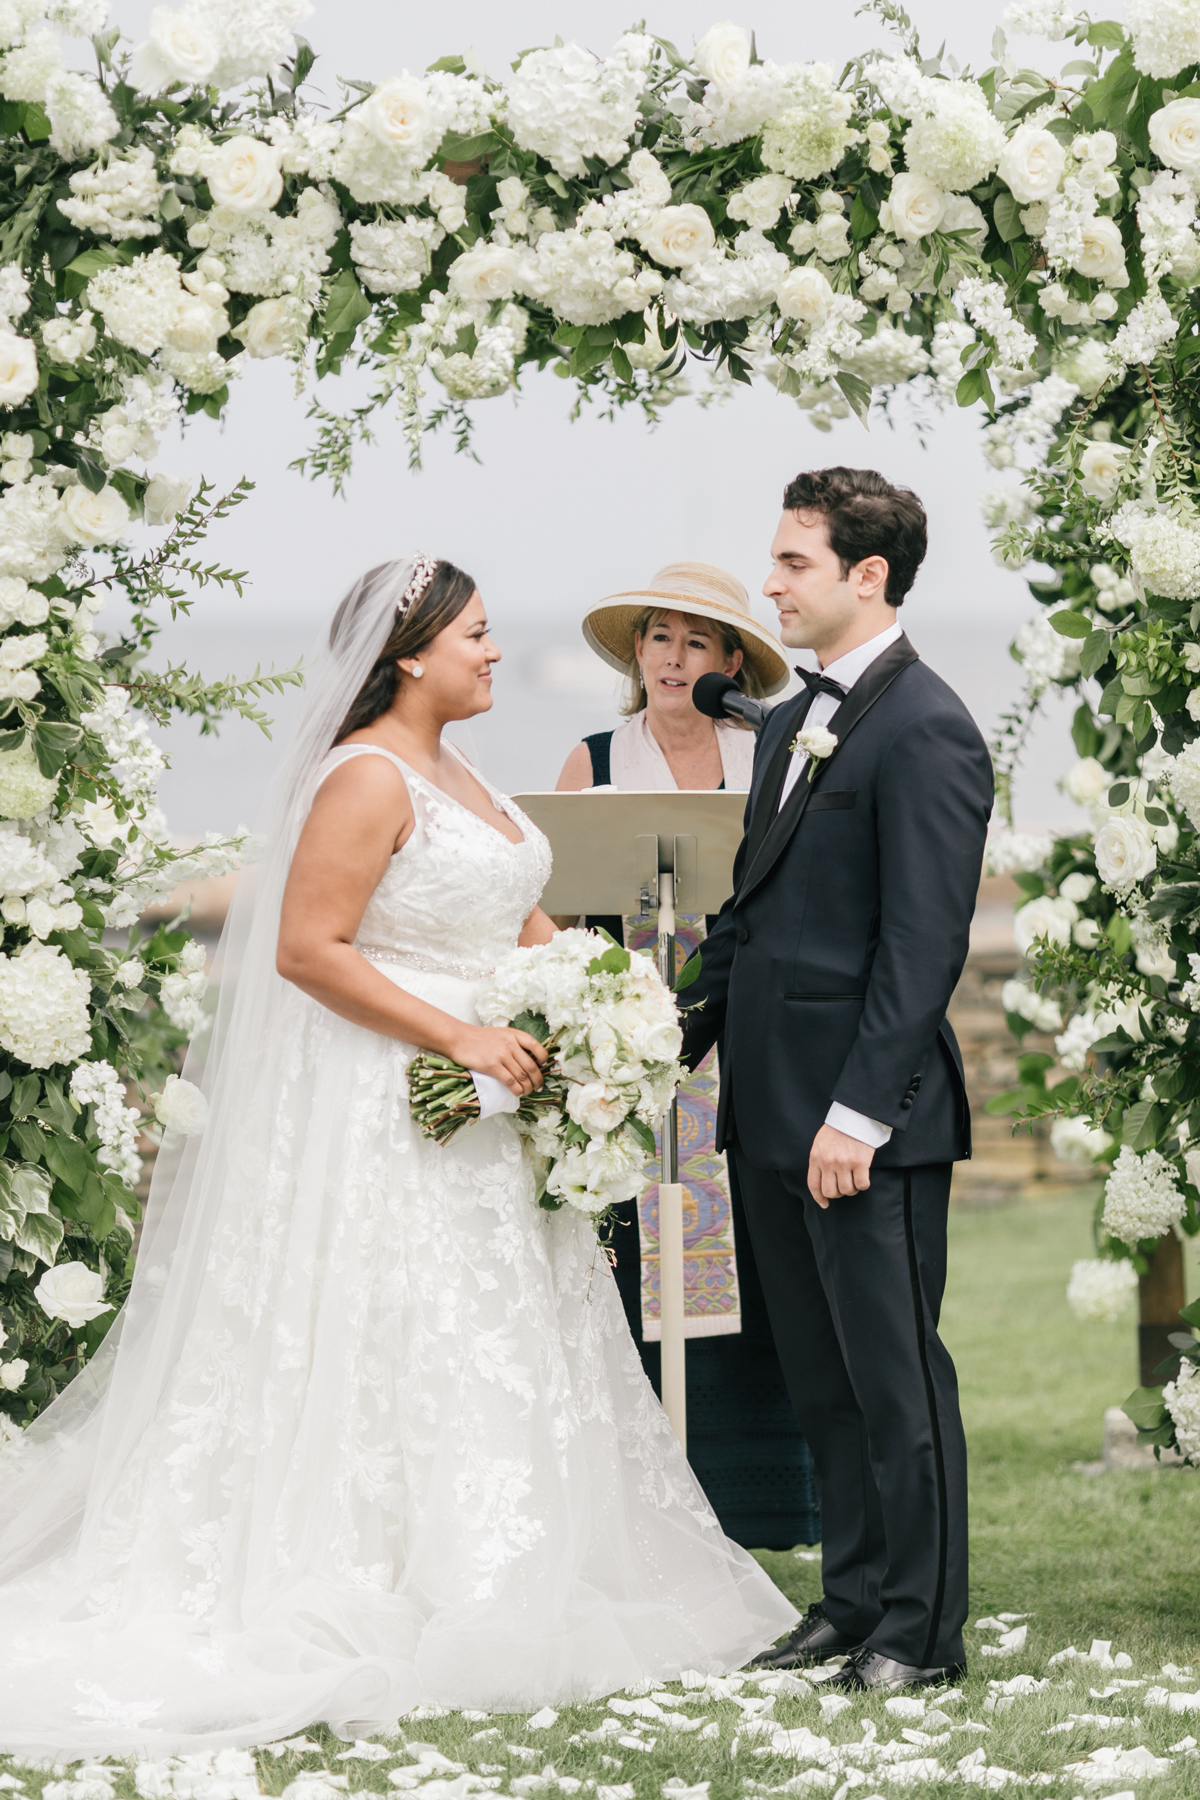 wedding ceremony bride and groom beneath arch of white flowers